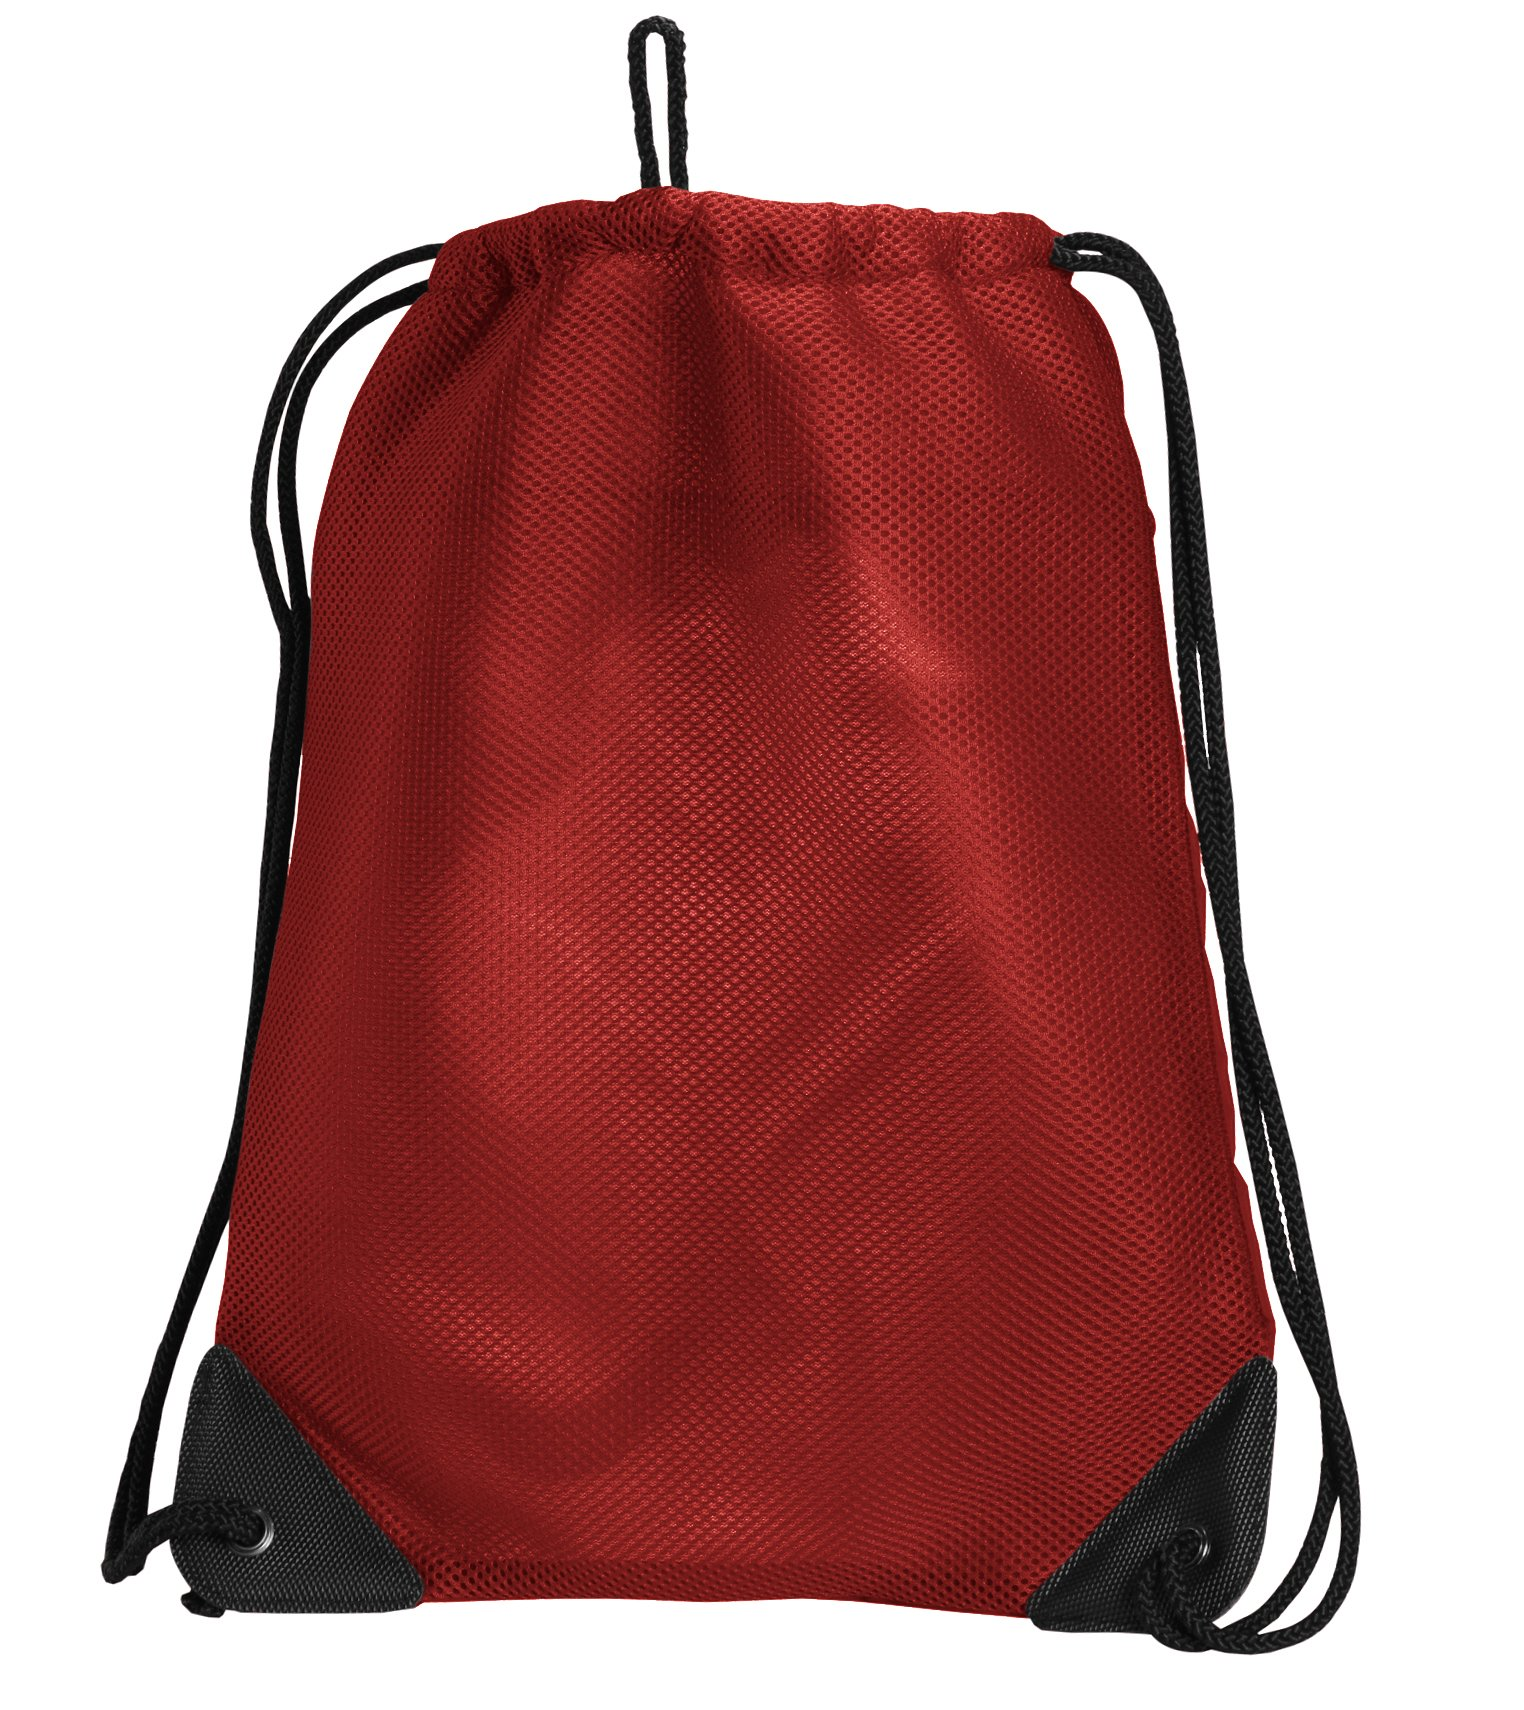 Broad Bay Alabama Drawstring Backpack Bag University of Alabama Cinch Pack - UNIQUE MESH & MICROFIBER by Broad Bay (Image #2)